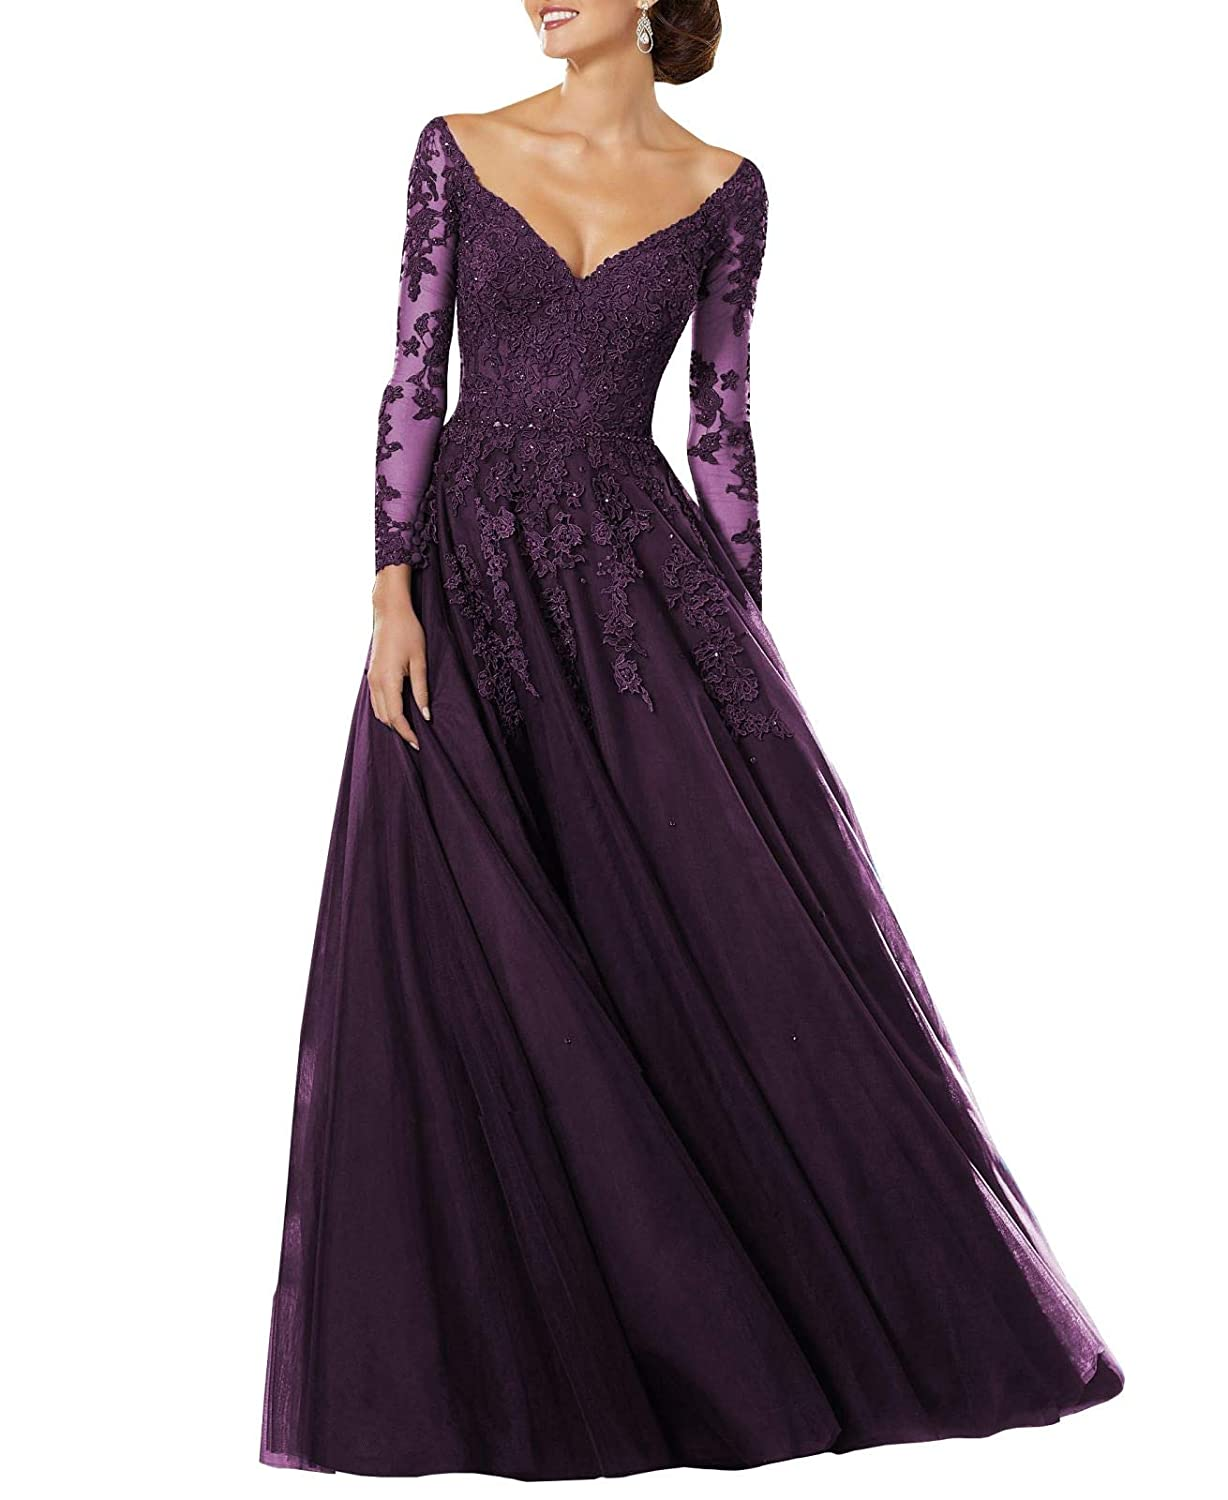 Darkmagenta Wanshaqin Women's Lace Appliqued VNeck Formal Evening Gown Sleeves Tulle Party Dress with Empire Jewelled Waist